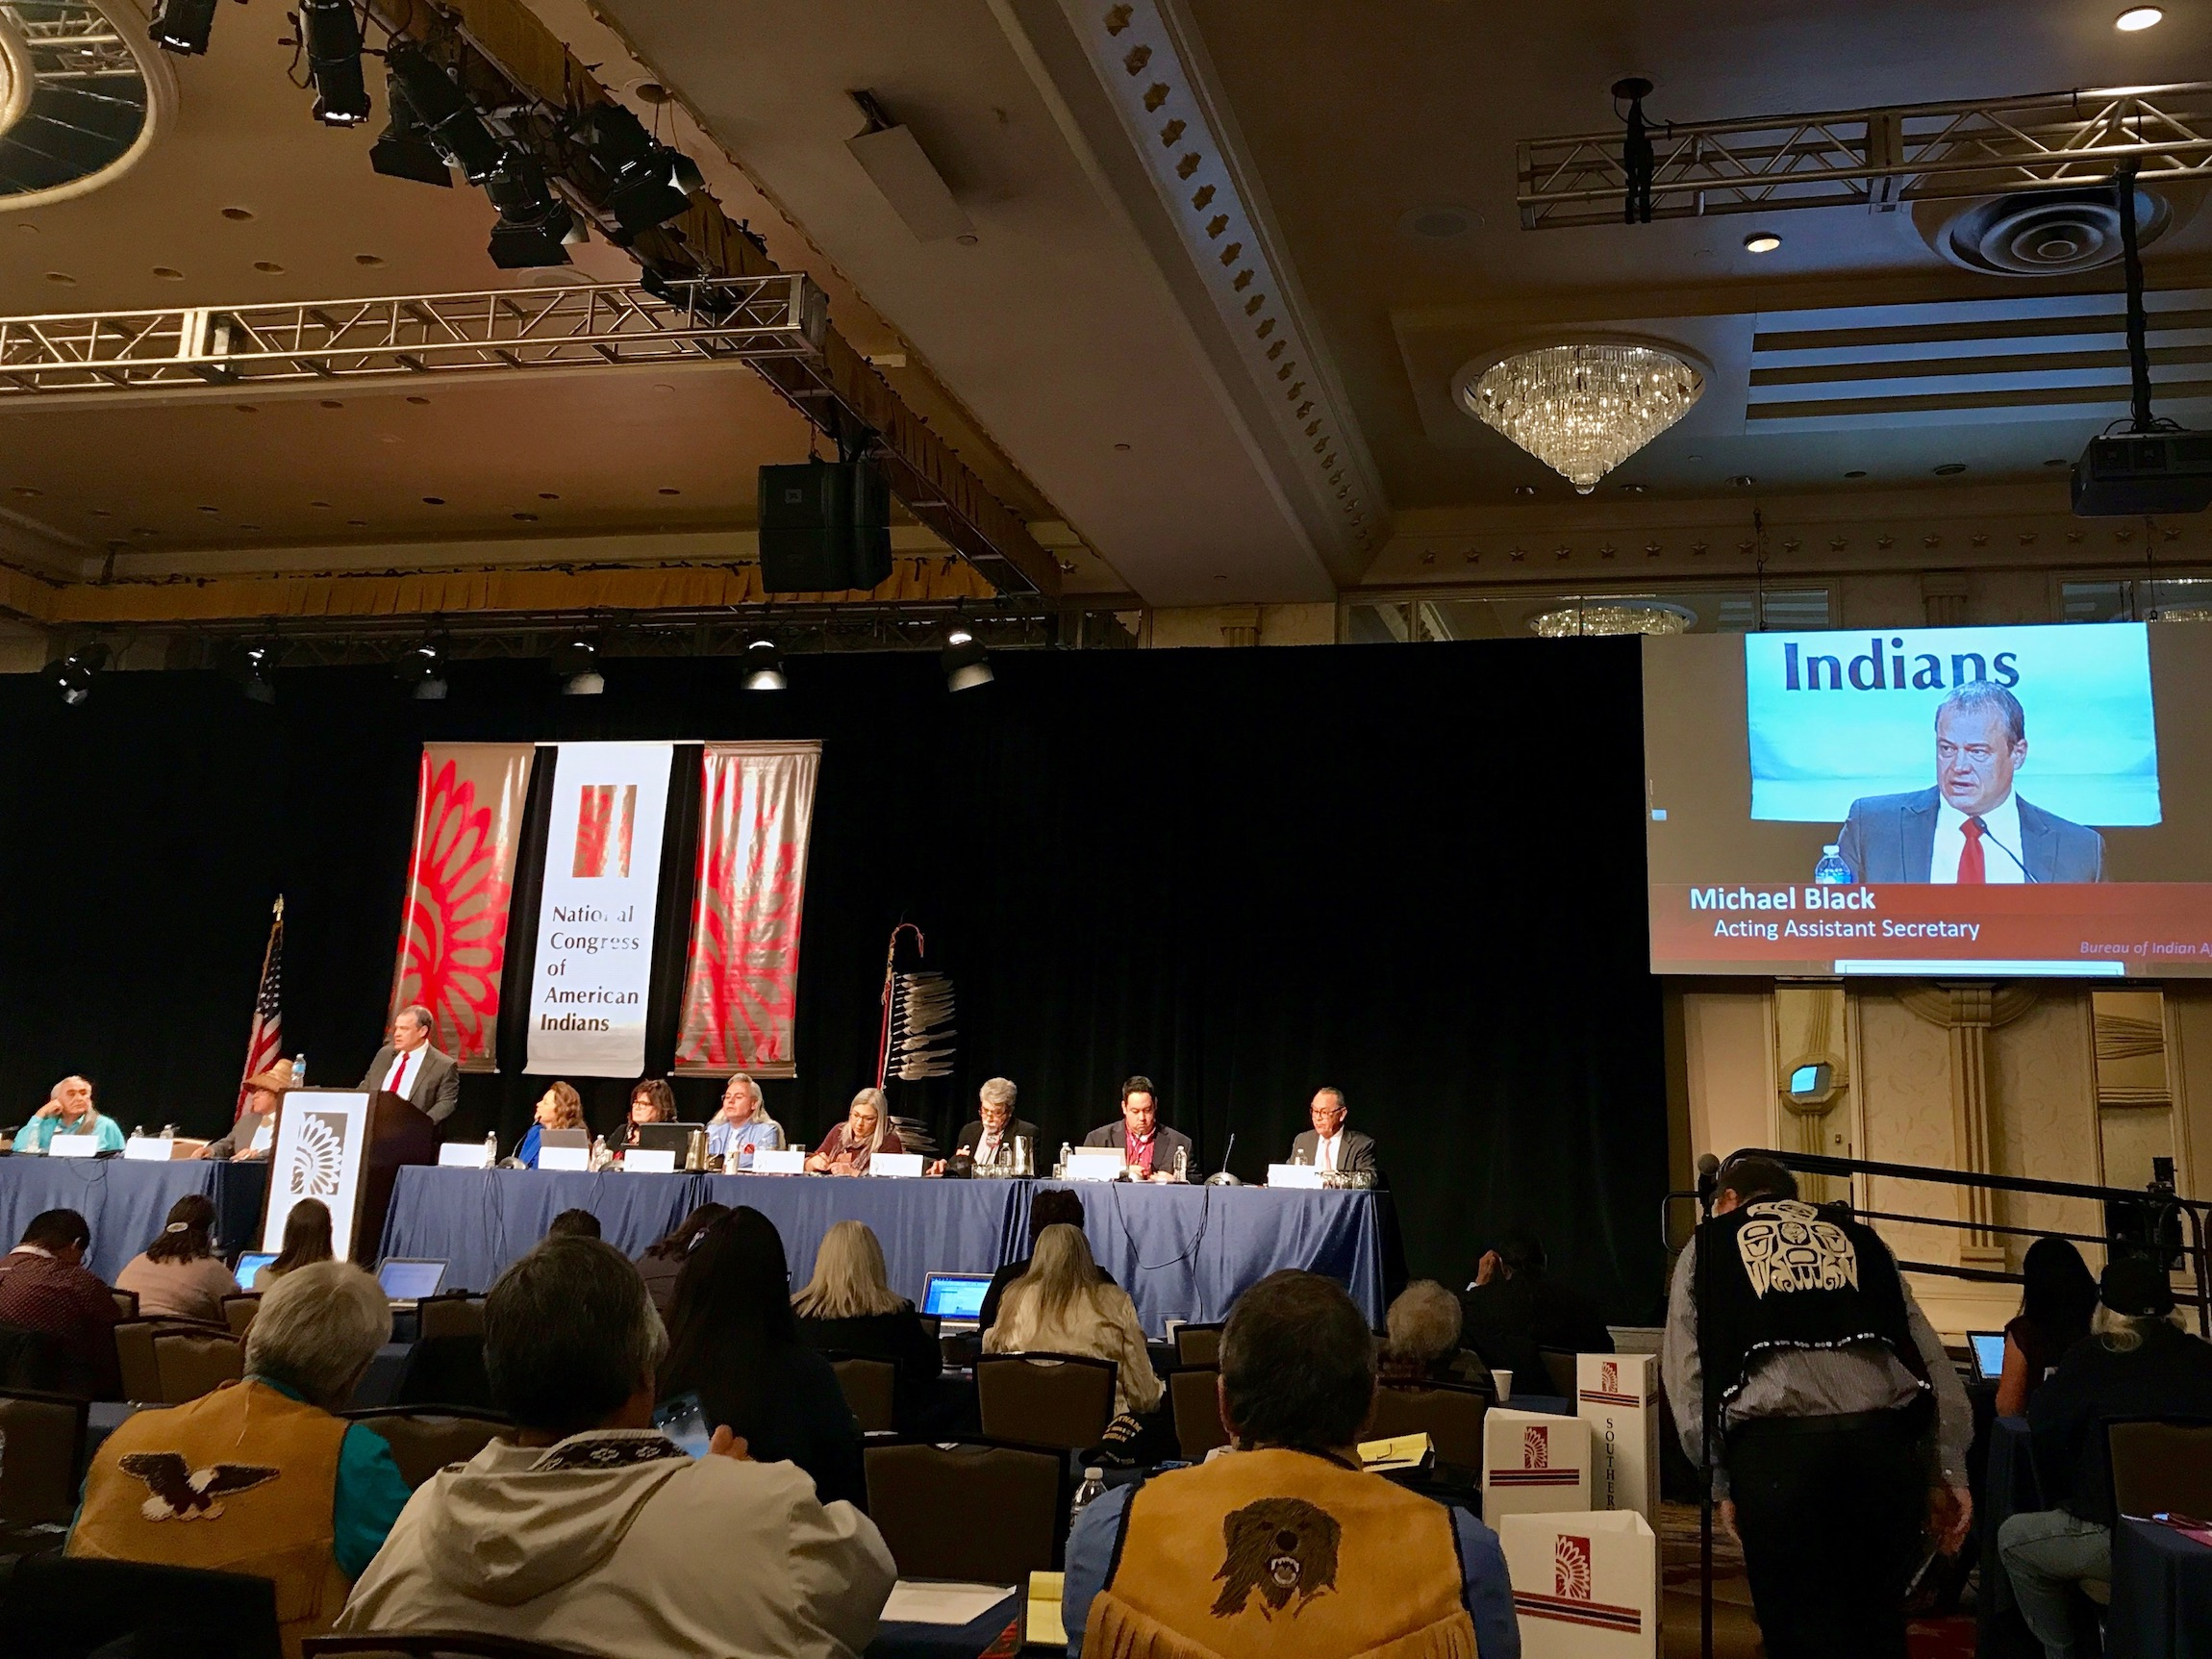 Bureau of Indian Affairs still failing on online security measures